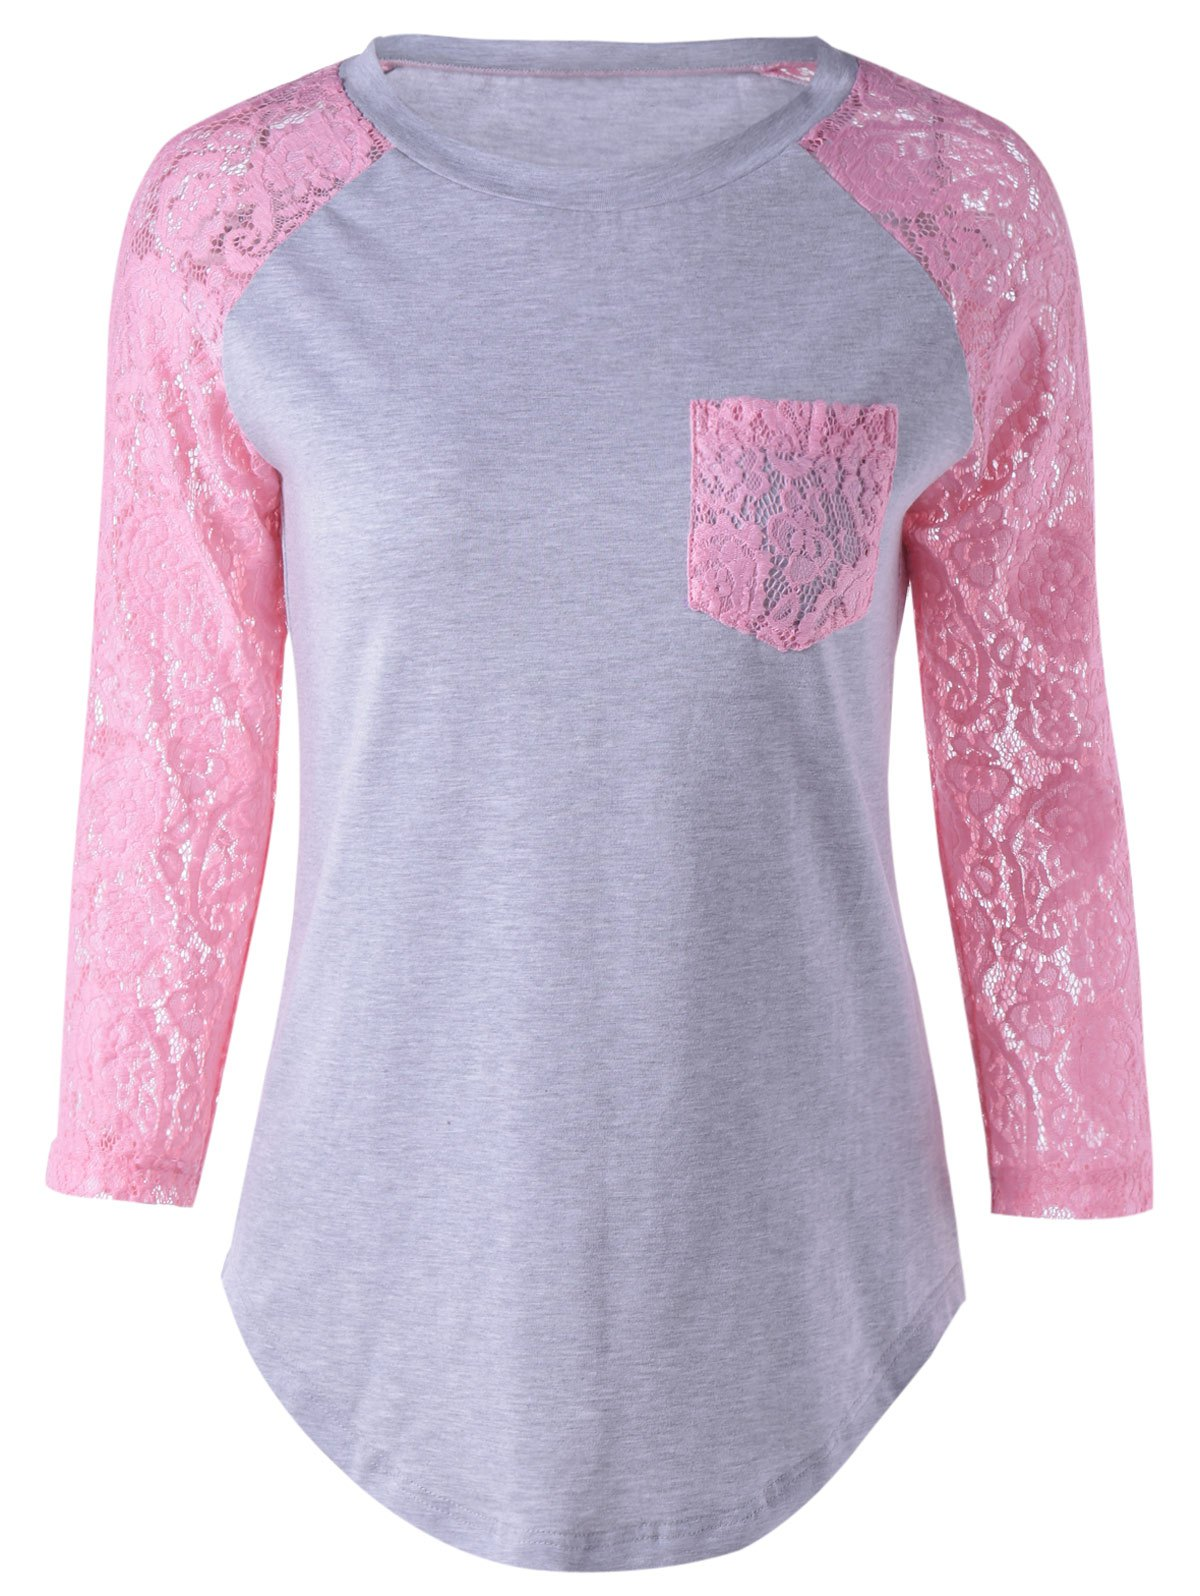 Single Pocket Lace Splicing T-Shirt - PINK / GRAY XL